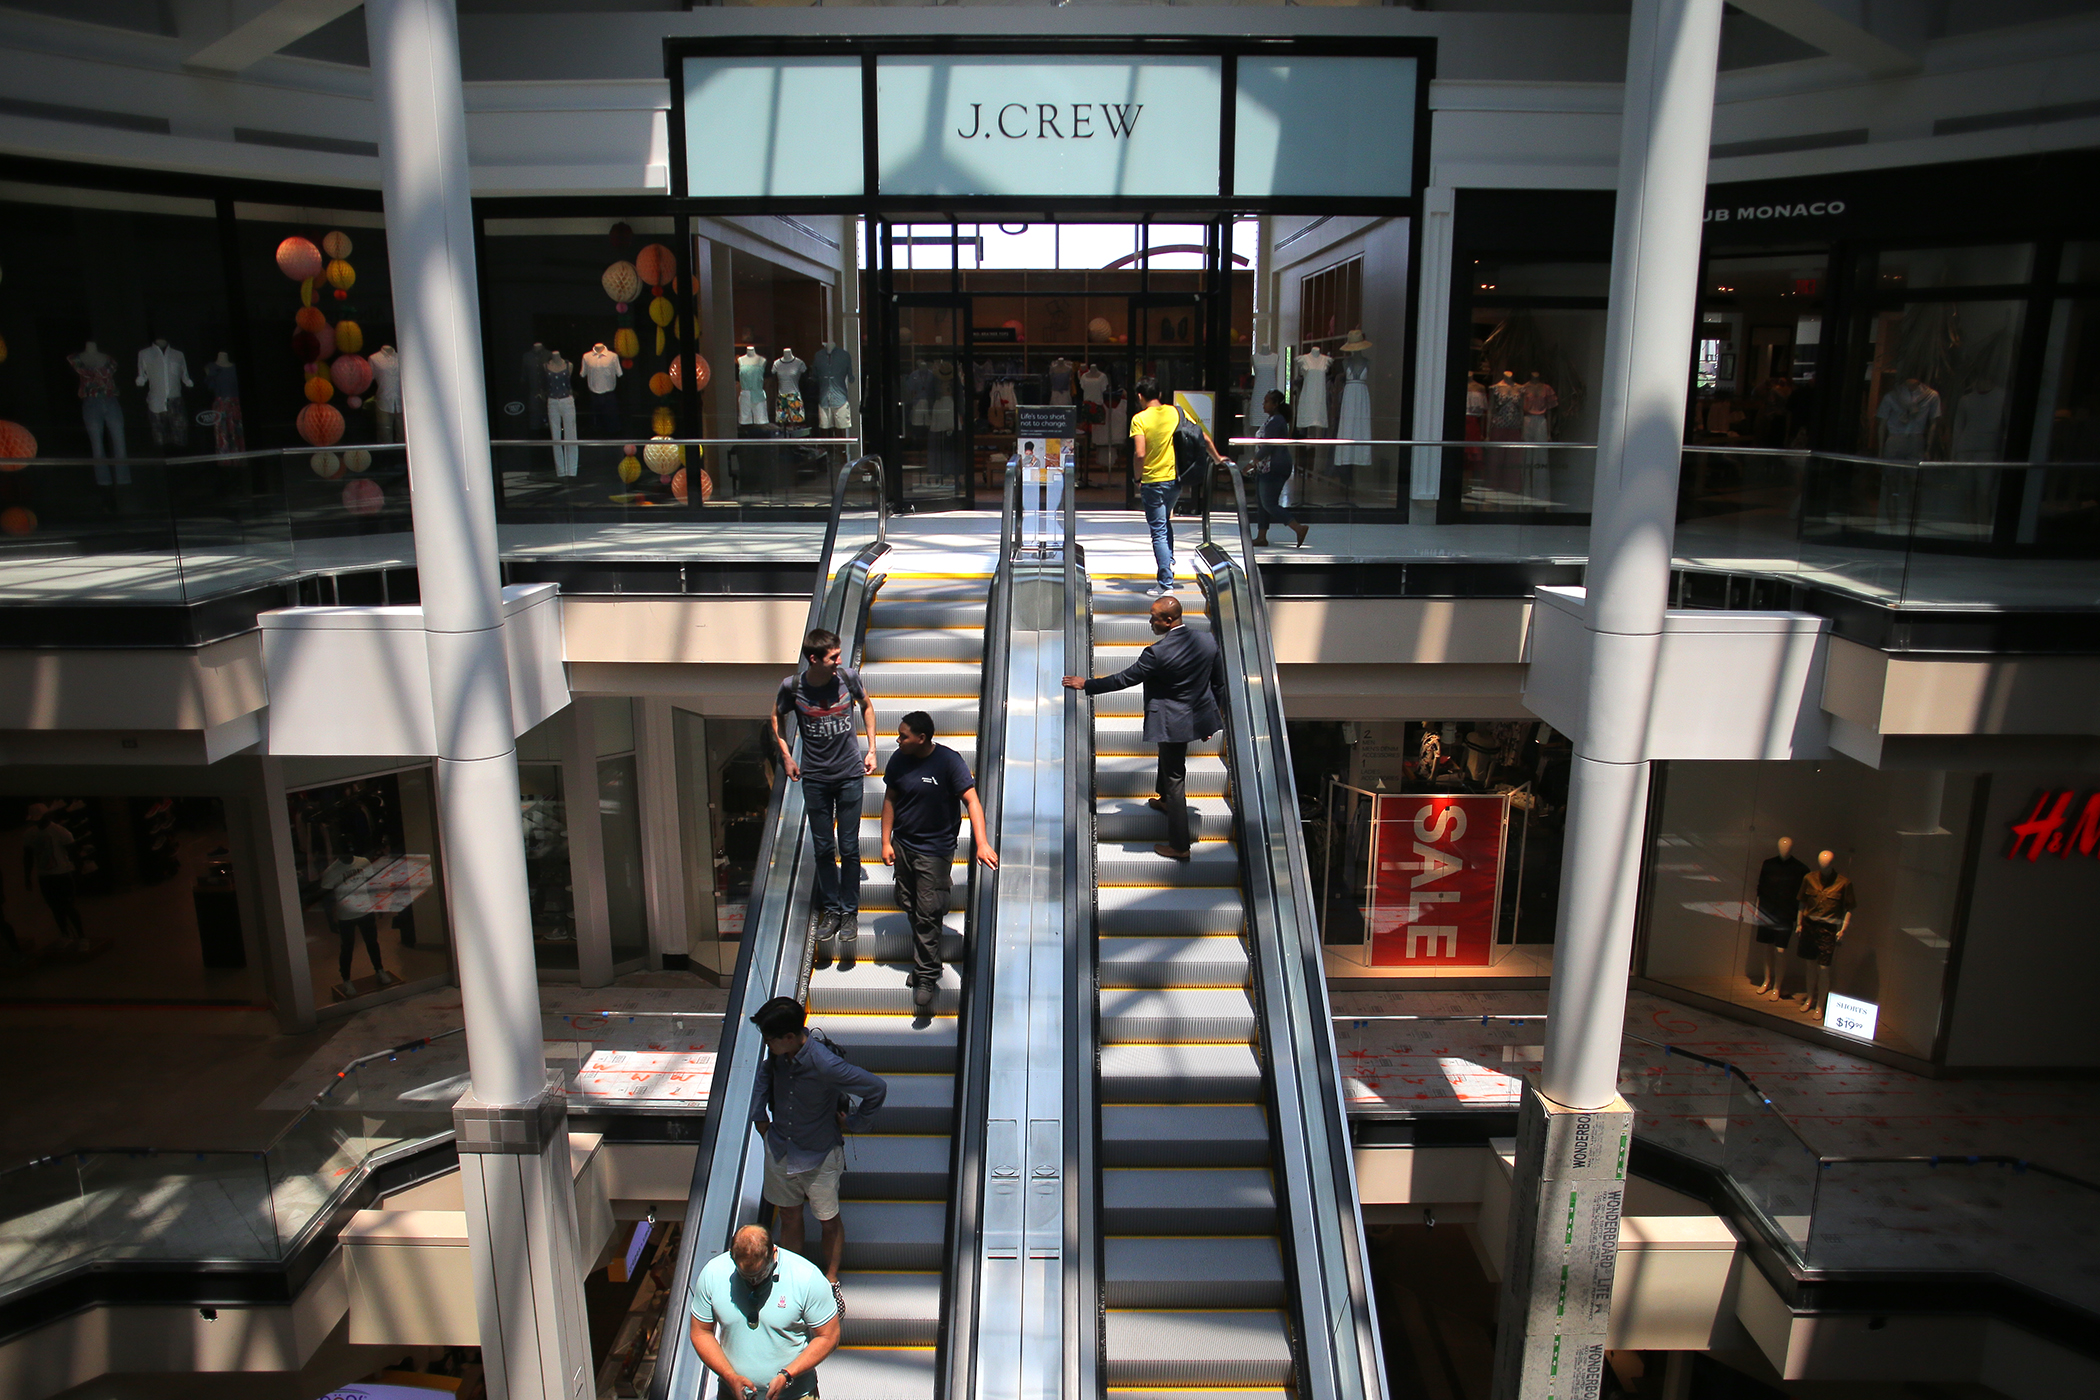 A wide shot of a pair of mall escalators in an airy mall with shops visible; and there are people on the escalators.